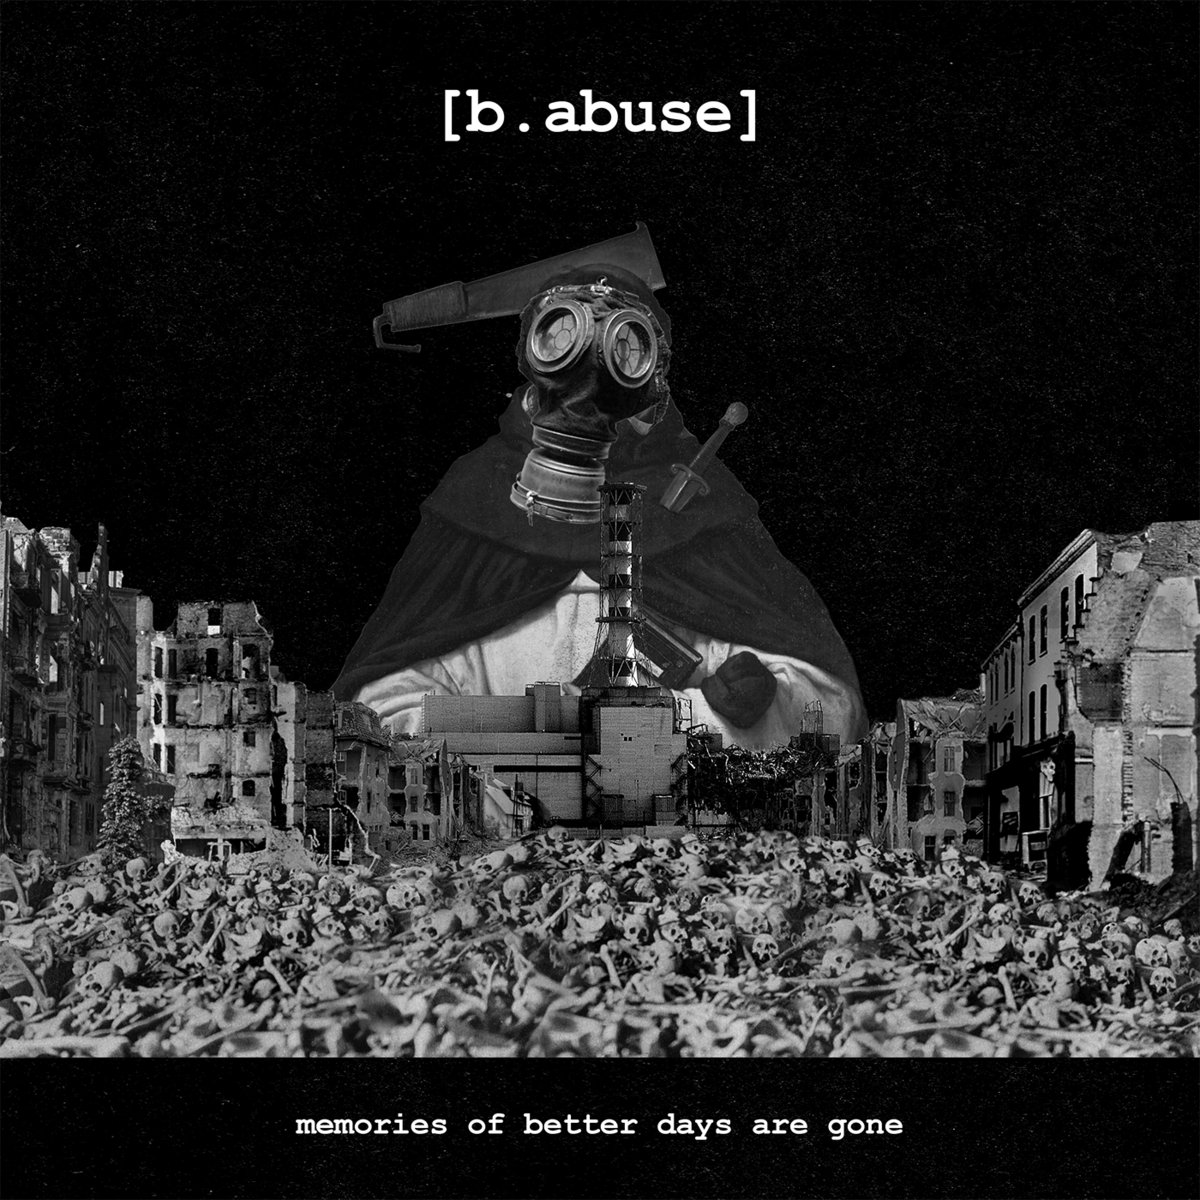 Babuse memories of better days are gone wooaaargh b abuse memories of better days are gone hexwebz Image collections